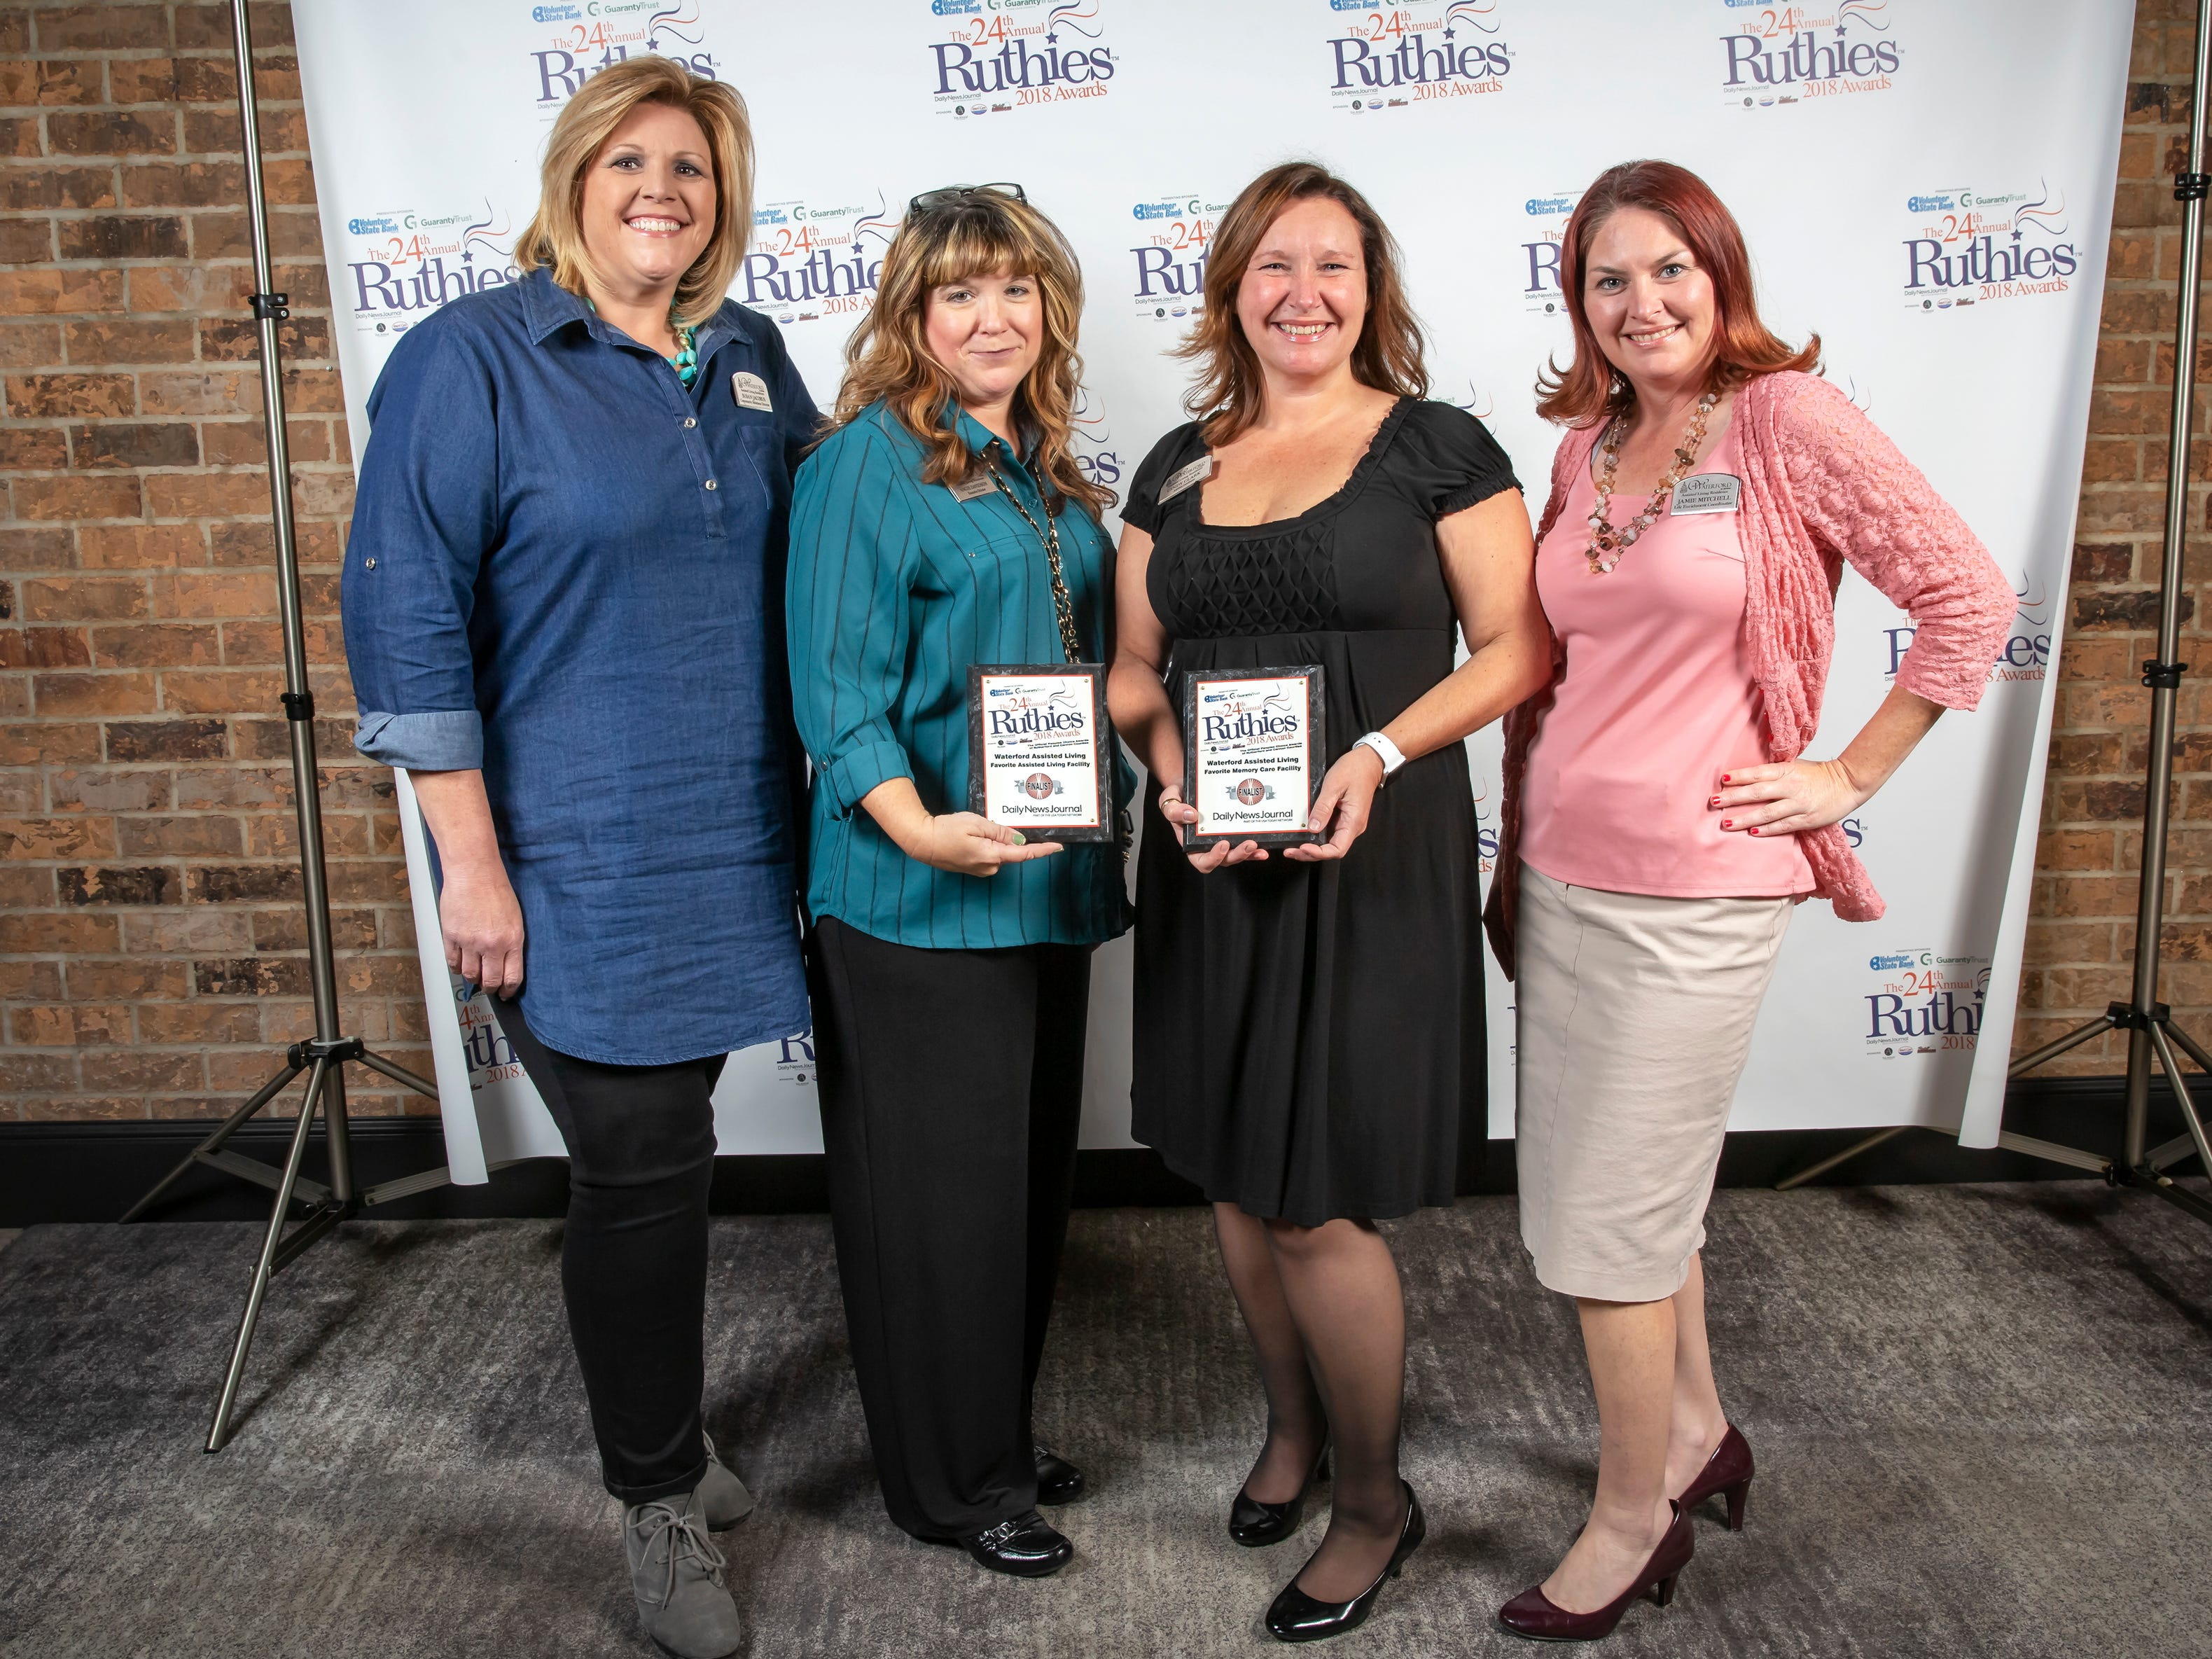 The 24th annual Ruthies Awards were held at DoubleTree Hotel in Murfreesboro on Tuesday, Oct. 23, 2018.